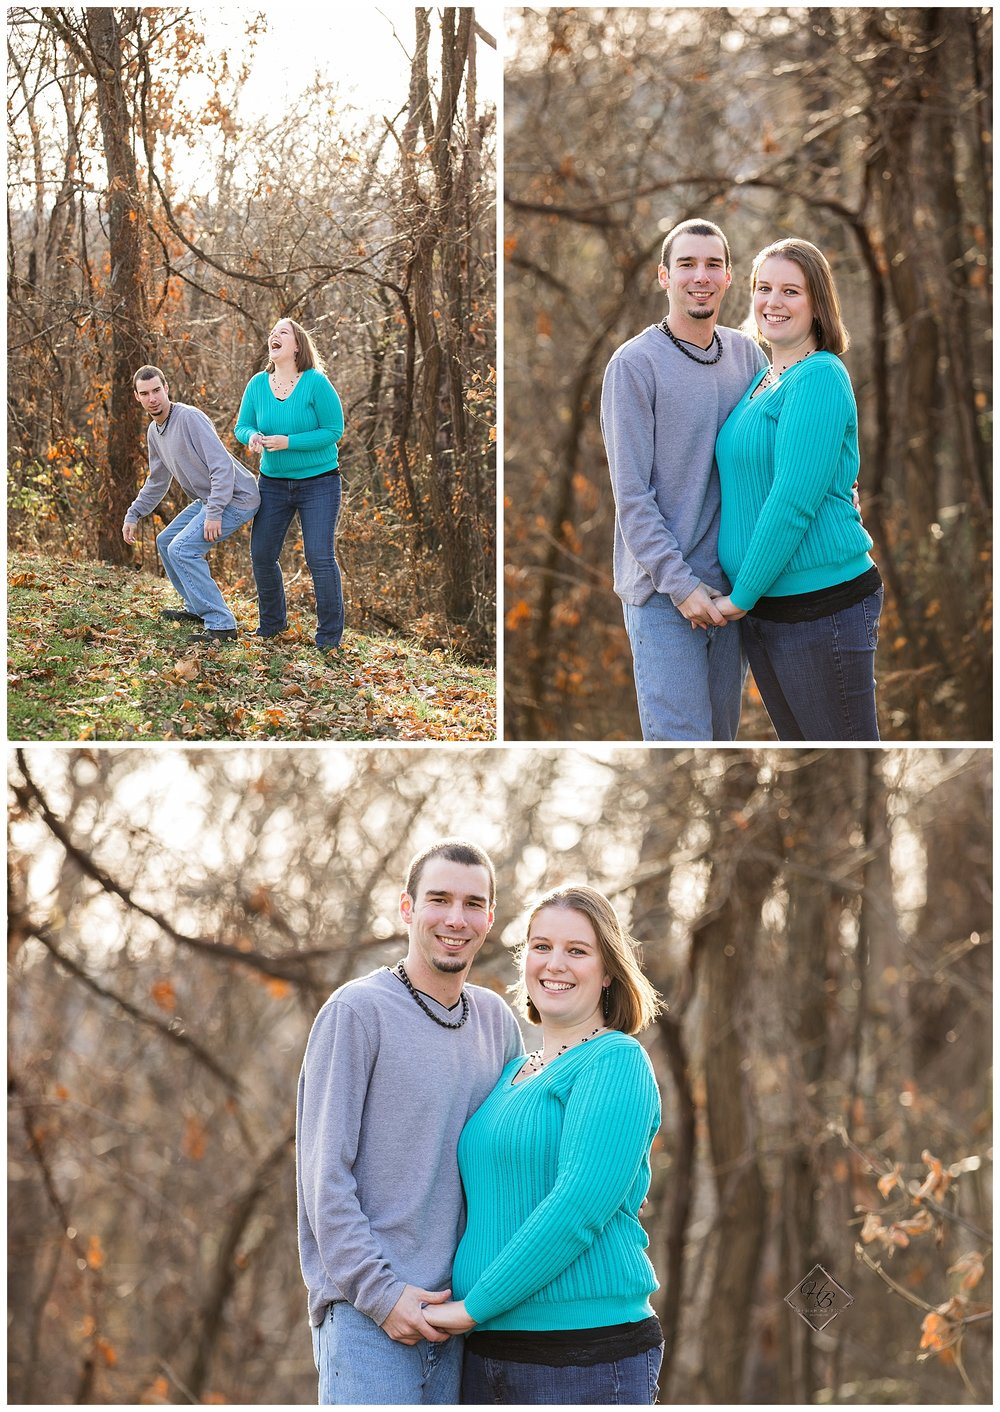 St.-Clairsville-Ohio-Proposal-Engagement-Photography_0032.JPG